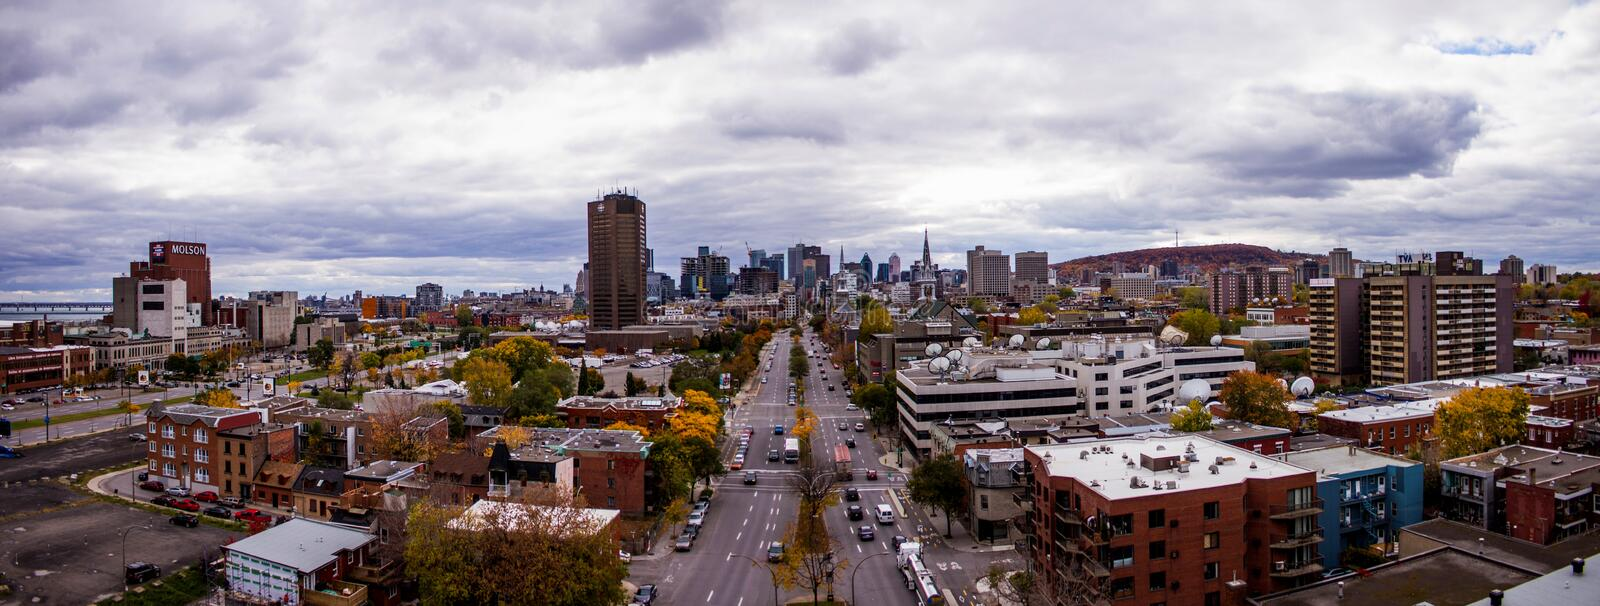 Down town, Montreal, Quebec, Canada royalty free stock photo